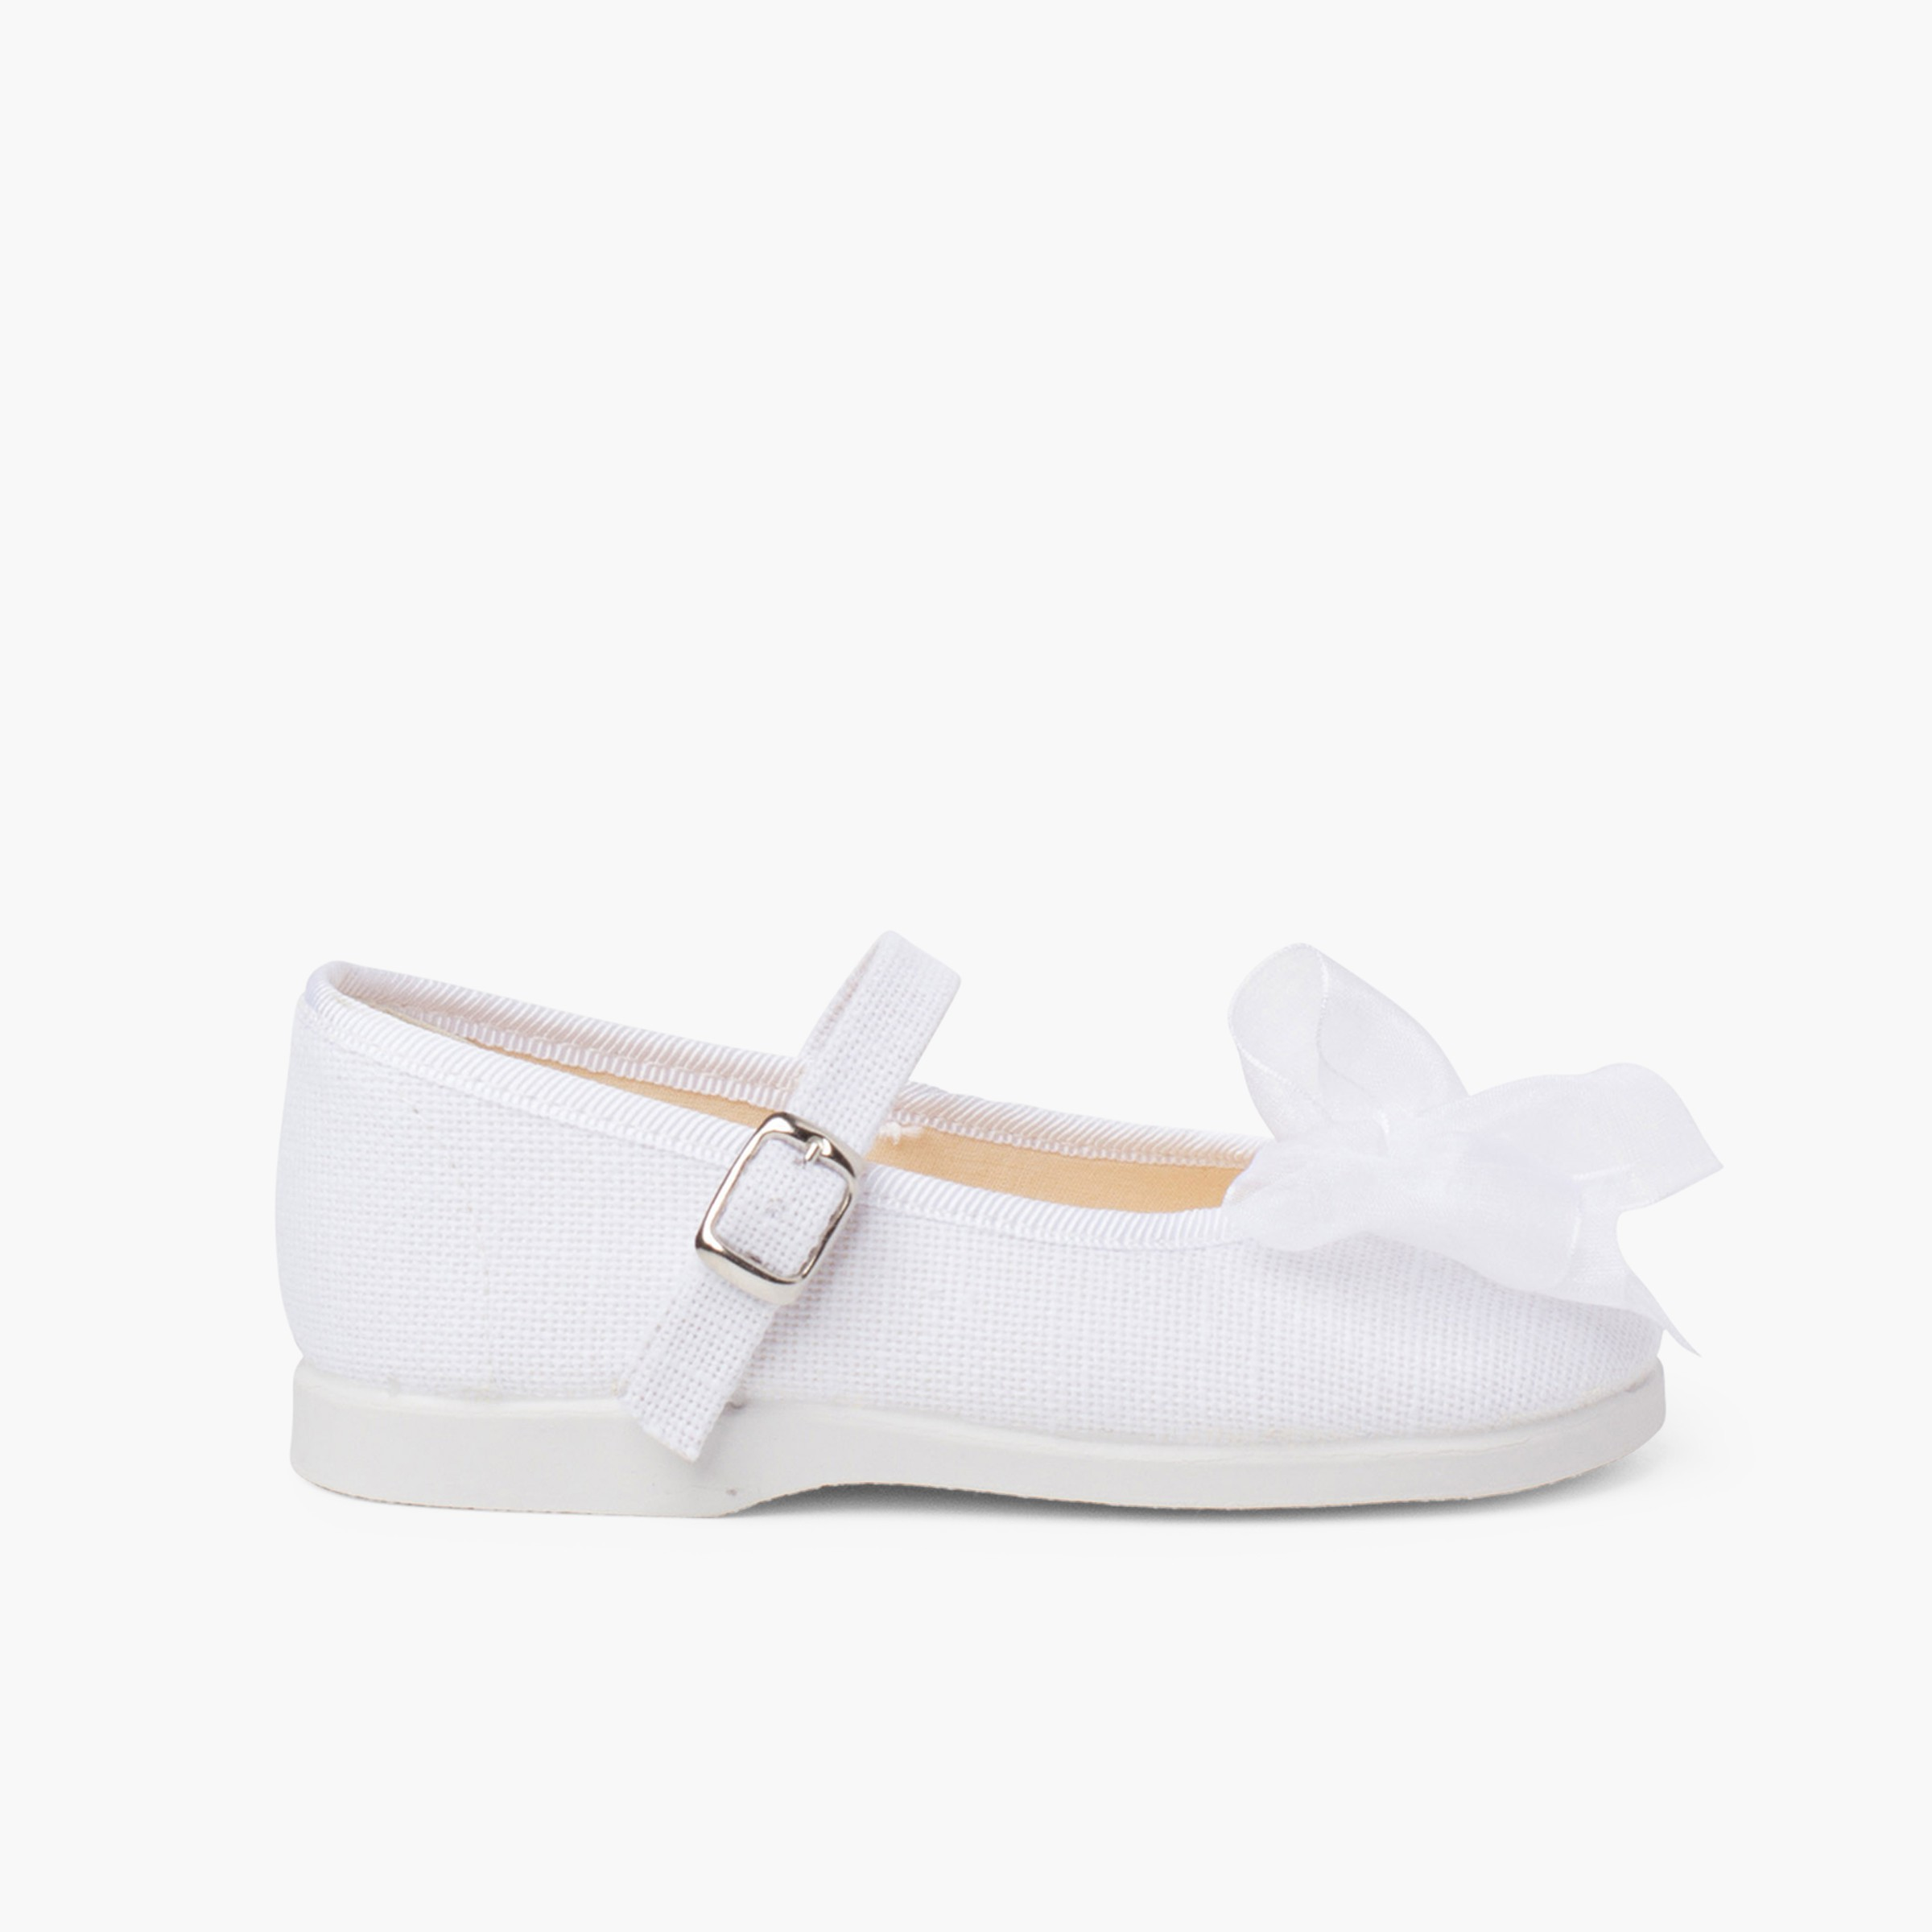 Organza Bow Buckle Linen Mary Janes